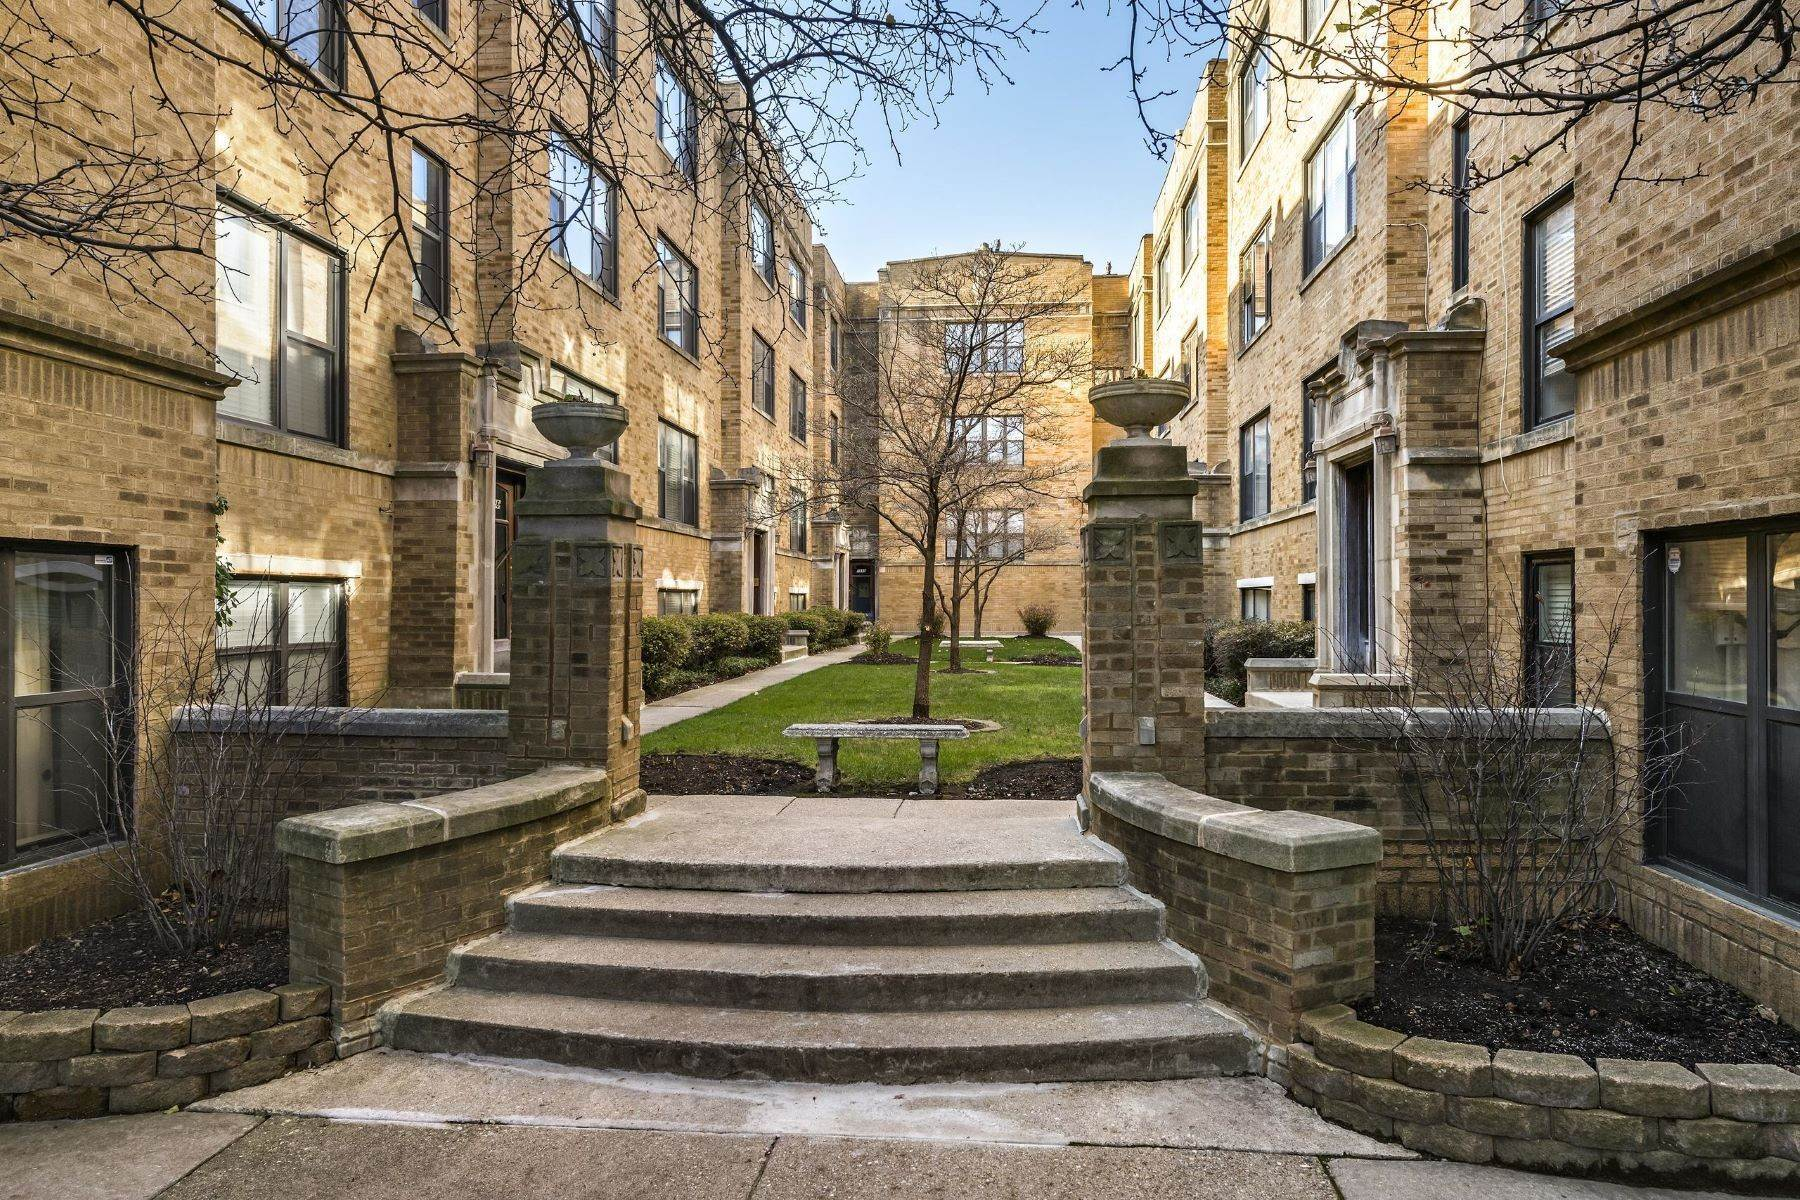 Property for Sale at Unique Duplex Down 5930 N Paulina Street, Unit 1 Chicago, Illinois 60660 United States